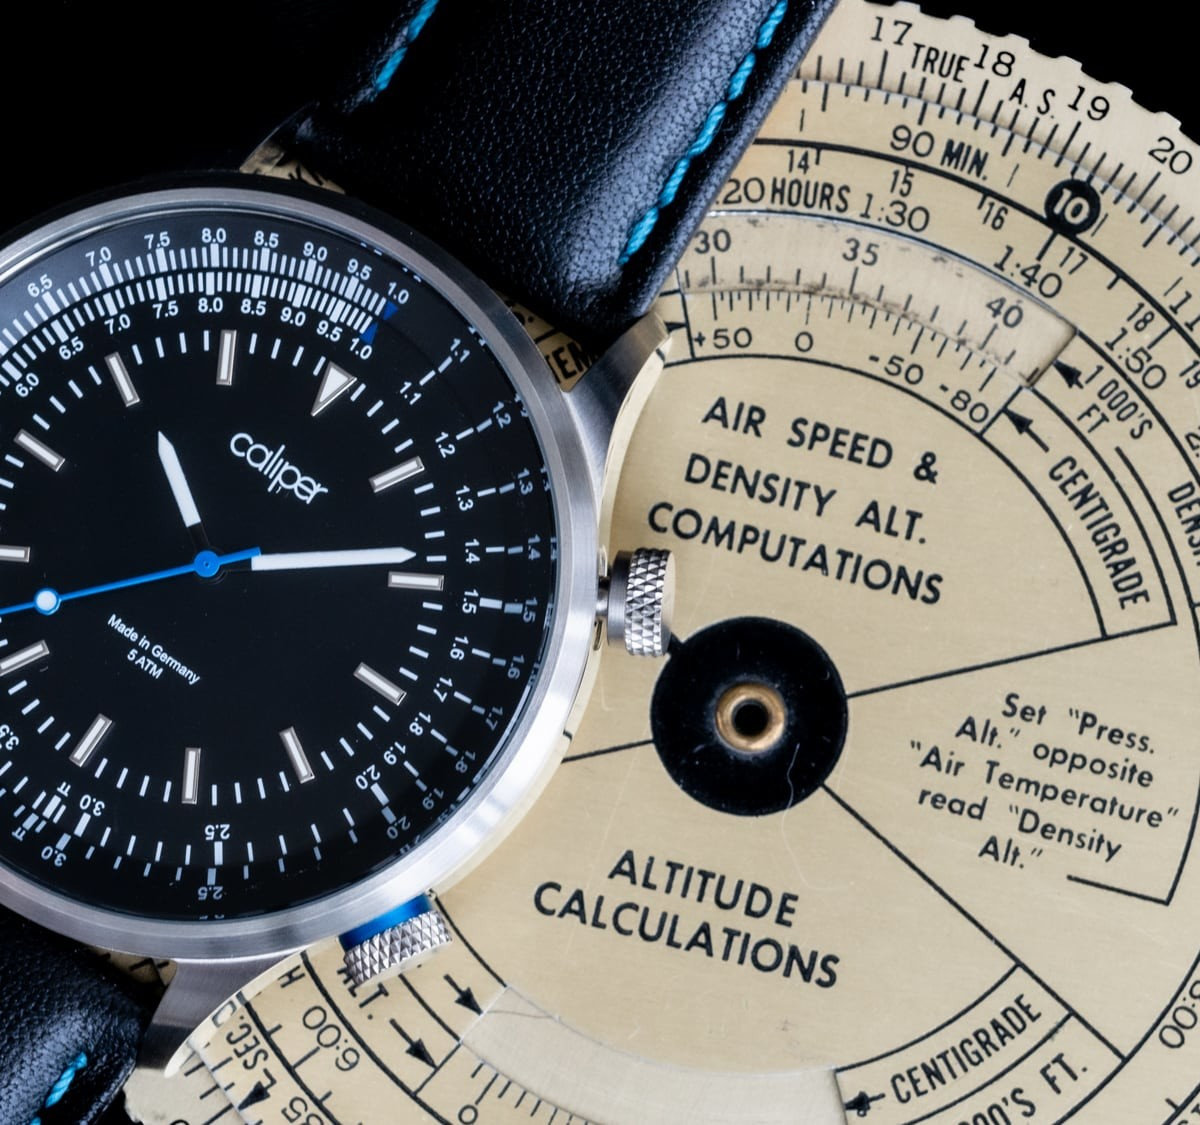 Caliper Slide View MKII Slide Rule Watch has an integrated calculator